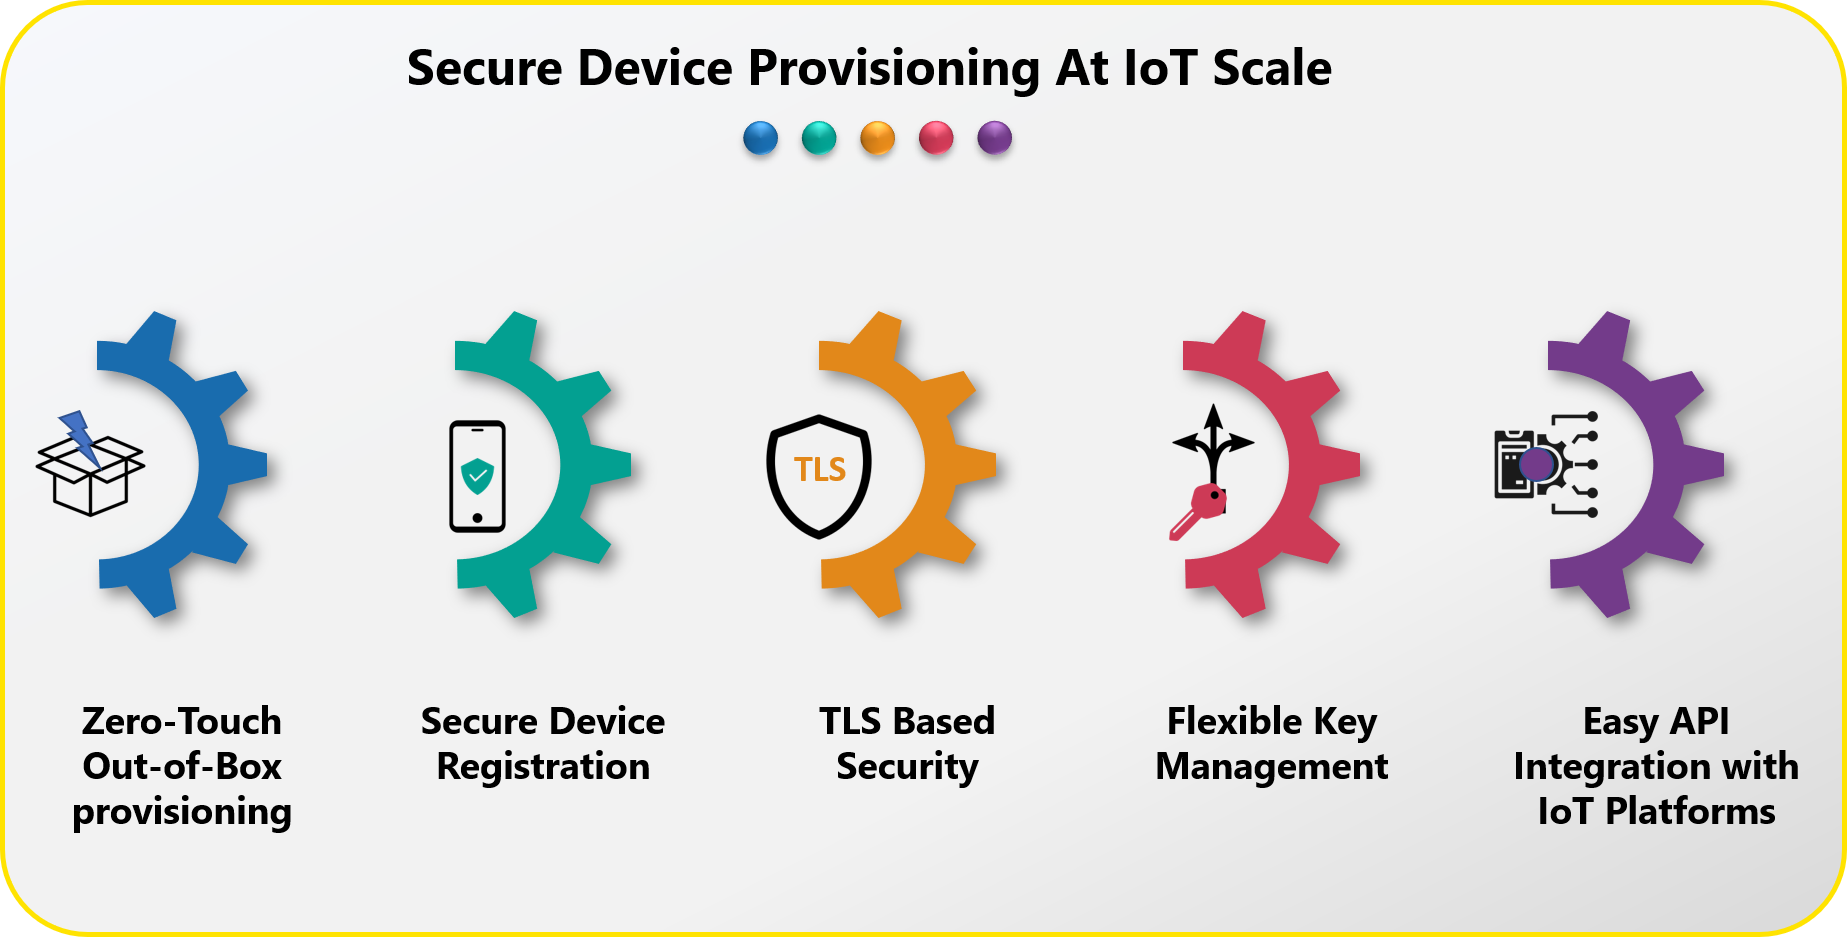 Secure device provisioning at IoT Scale